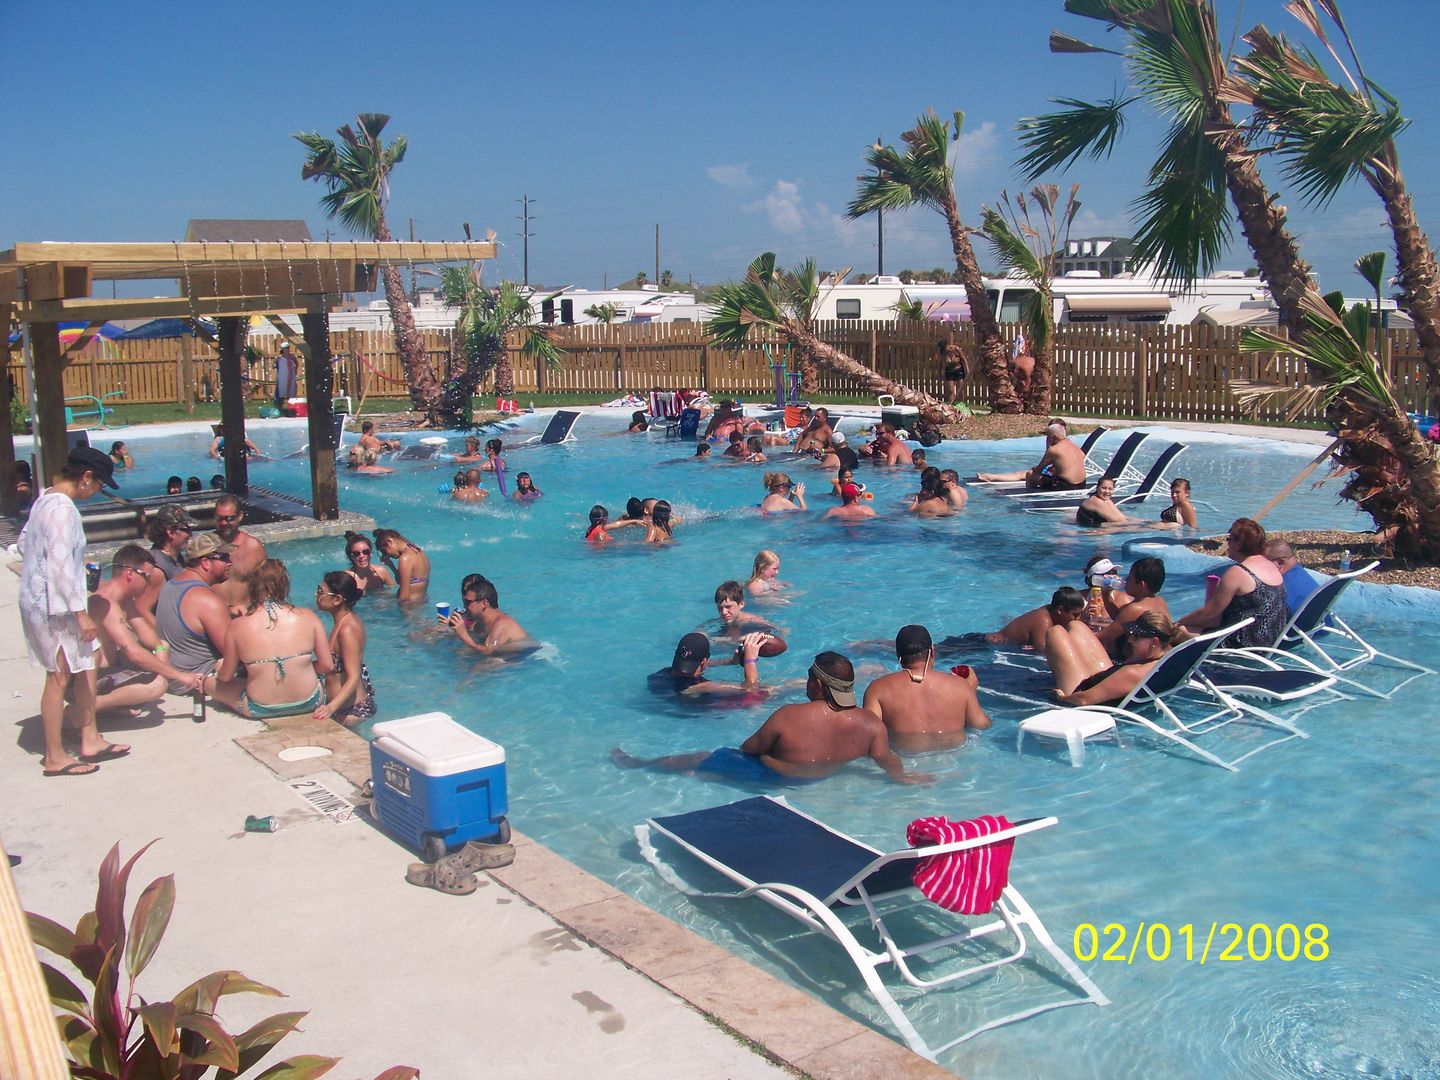 Rates At The Jamaica Beach Rv Resort In Galveston Jamaica Beaches Galveston Texas Beaches